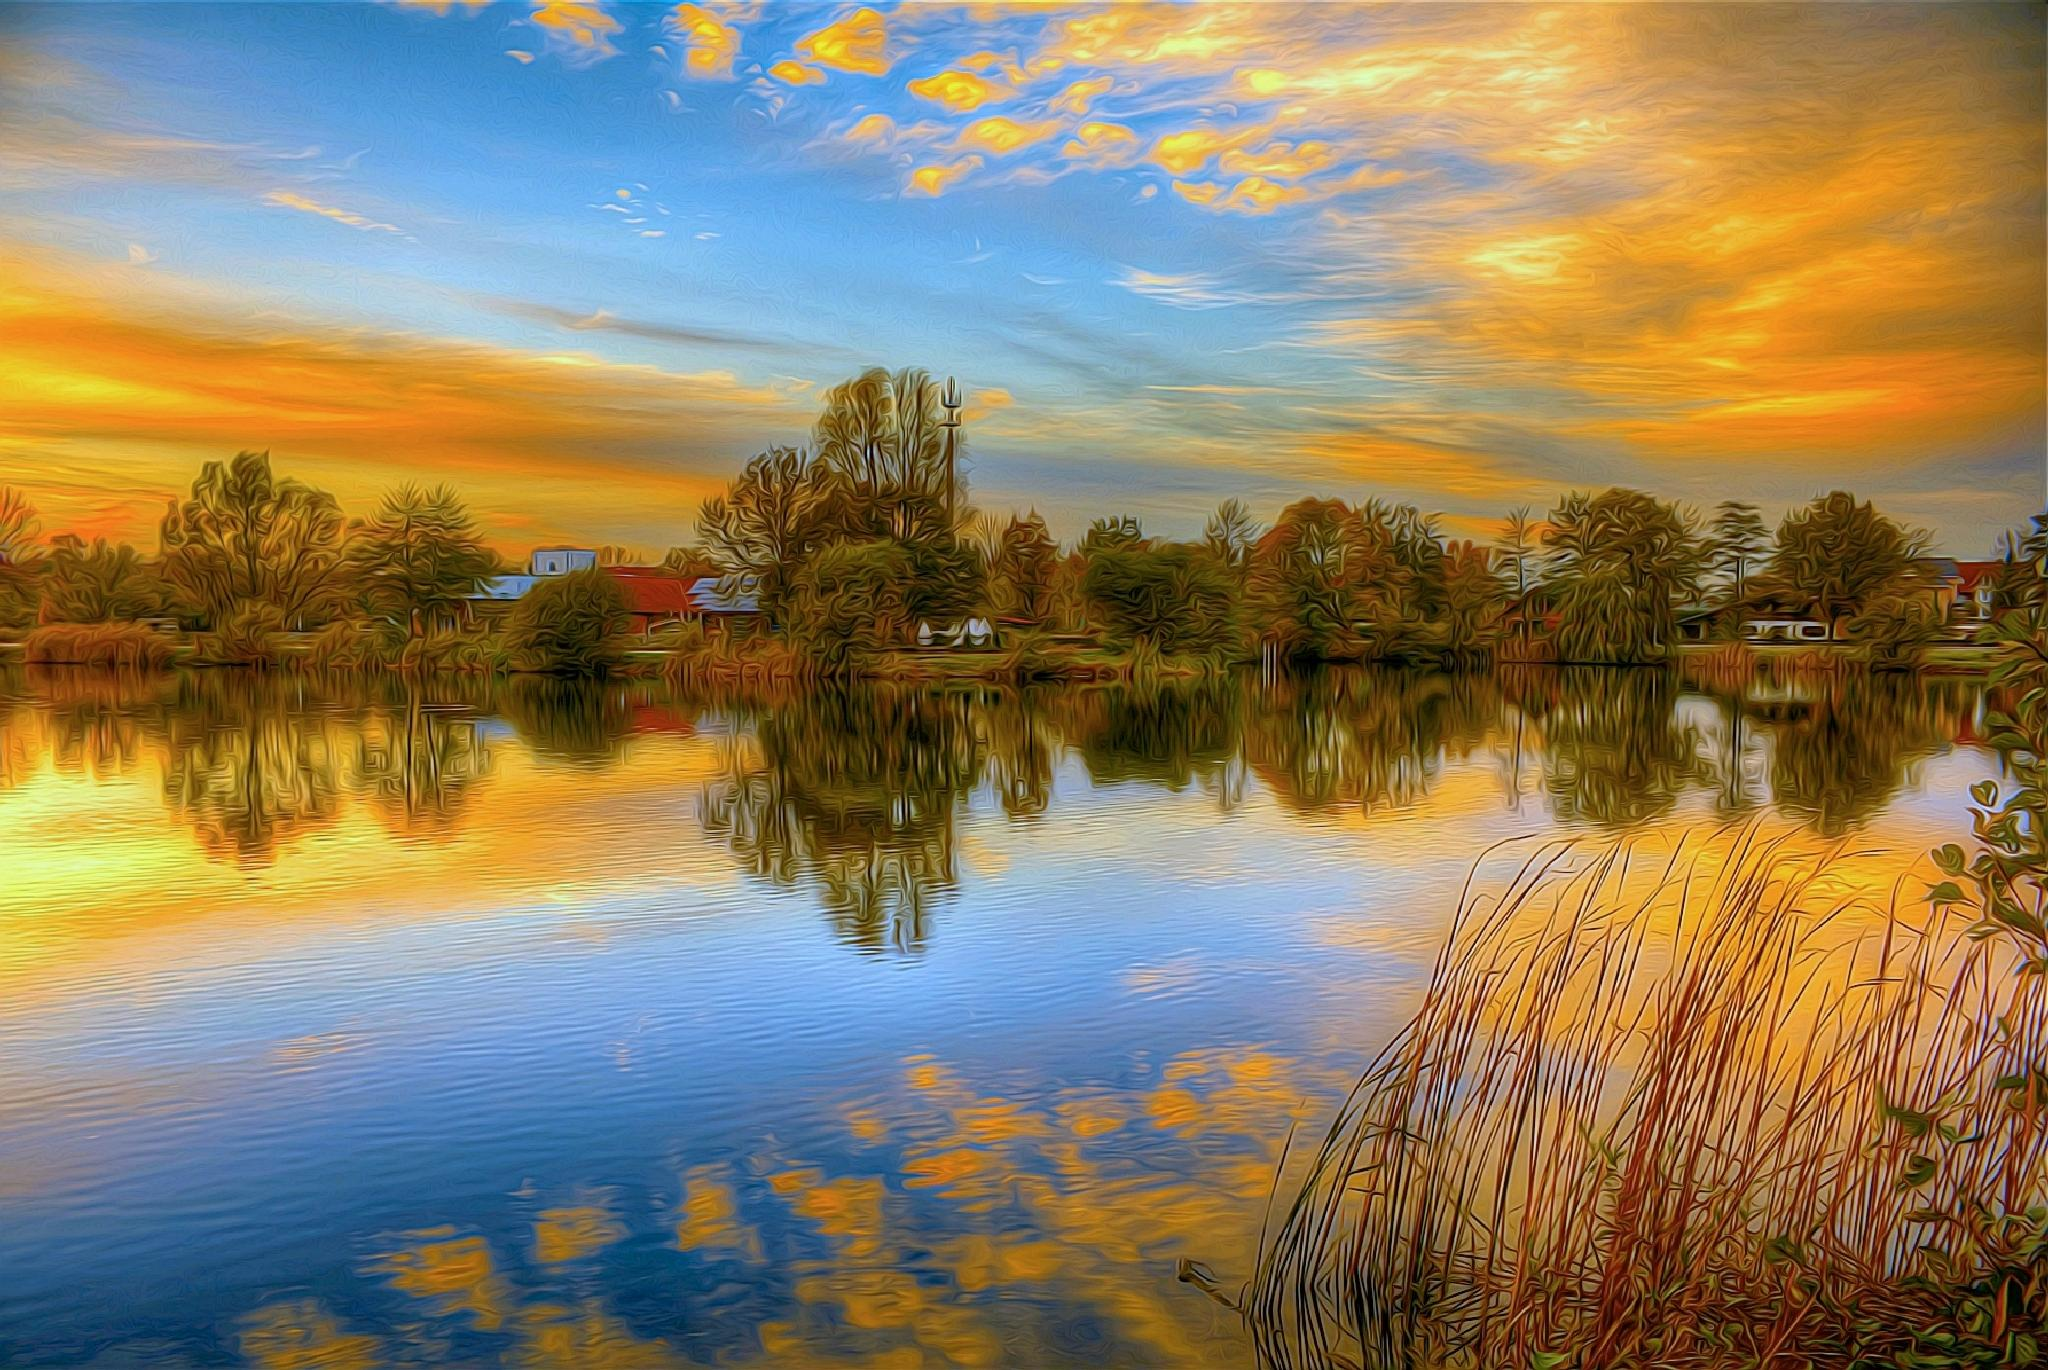 Oil filtered Lake by Maik Richter Photography